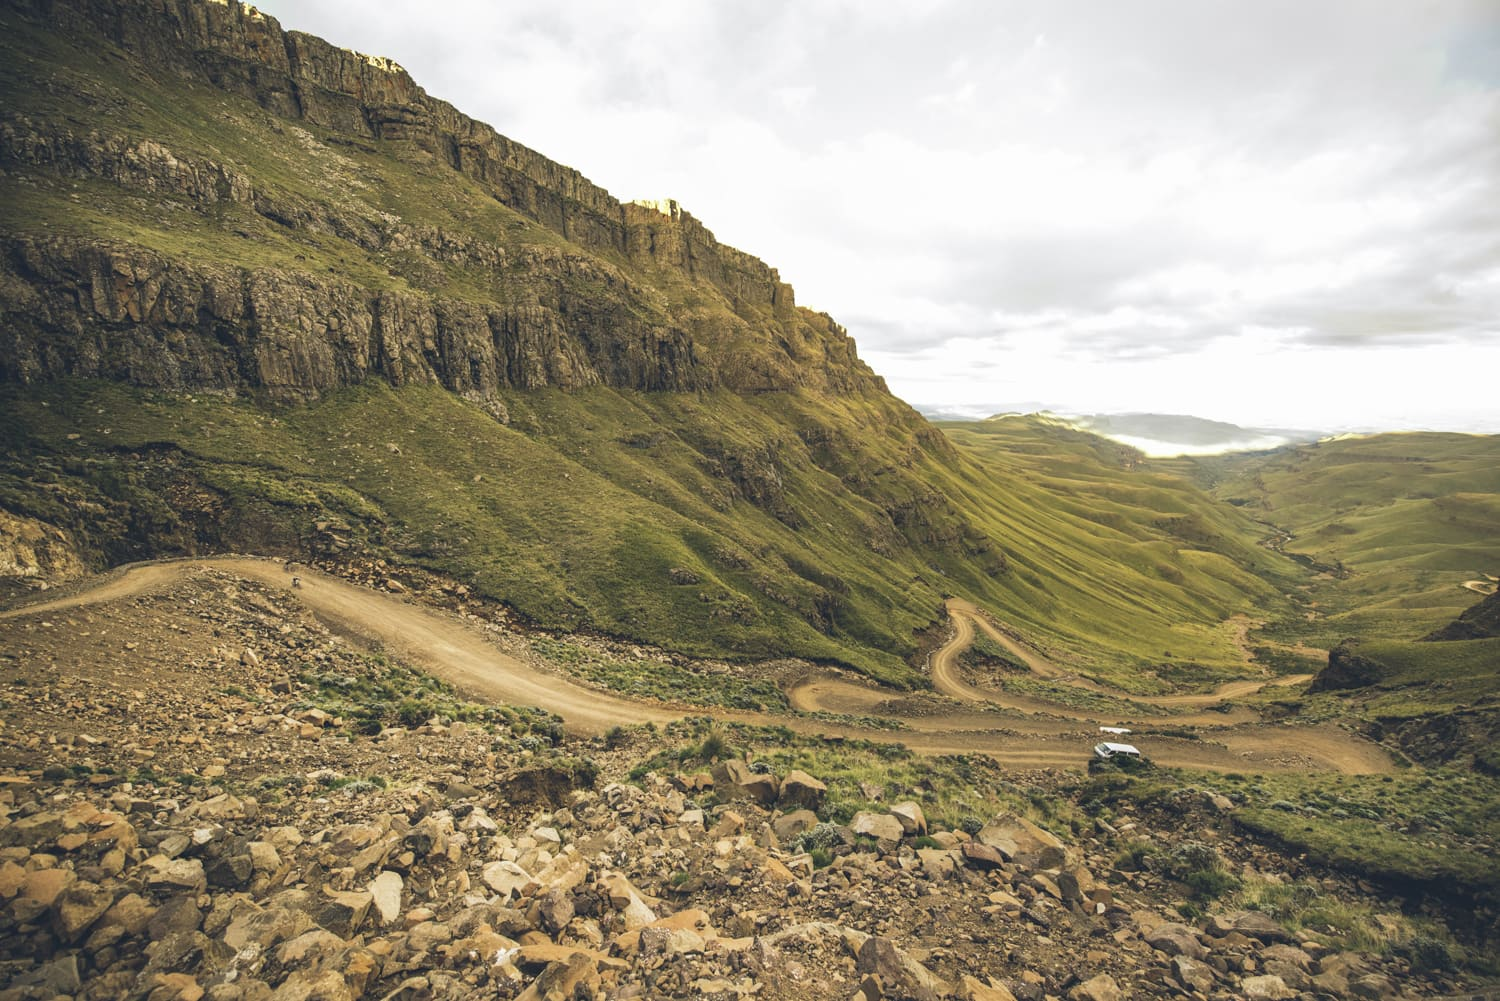 sani-pass-desmond-louw-bicycling-magazine-wowrides-0099